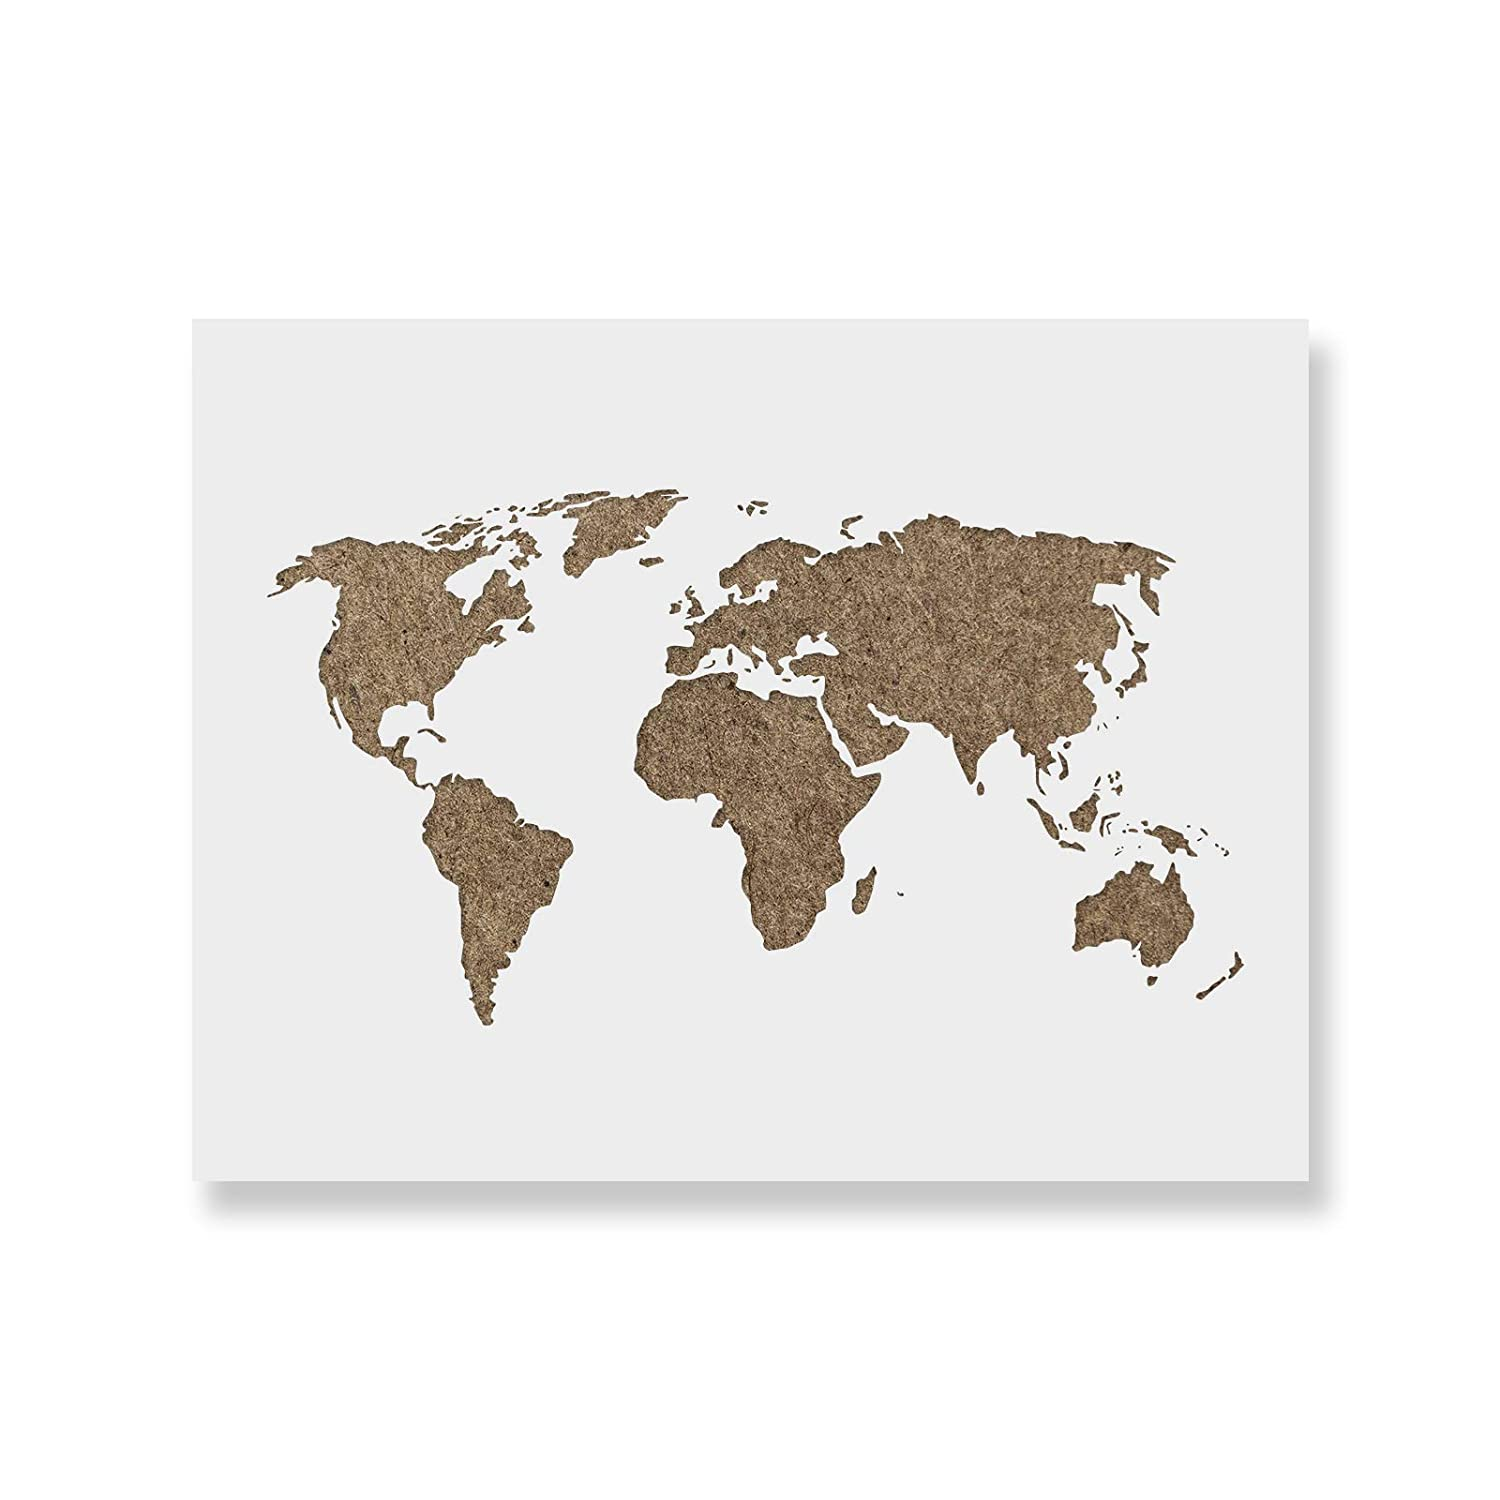 World Map Stencil Amazon.com: World Map Stencil Template for Walls and Crafts